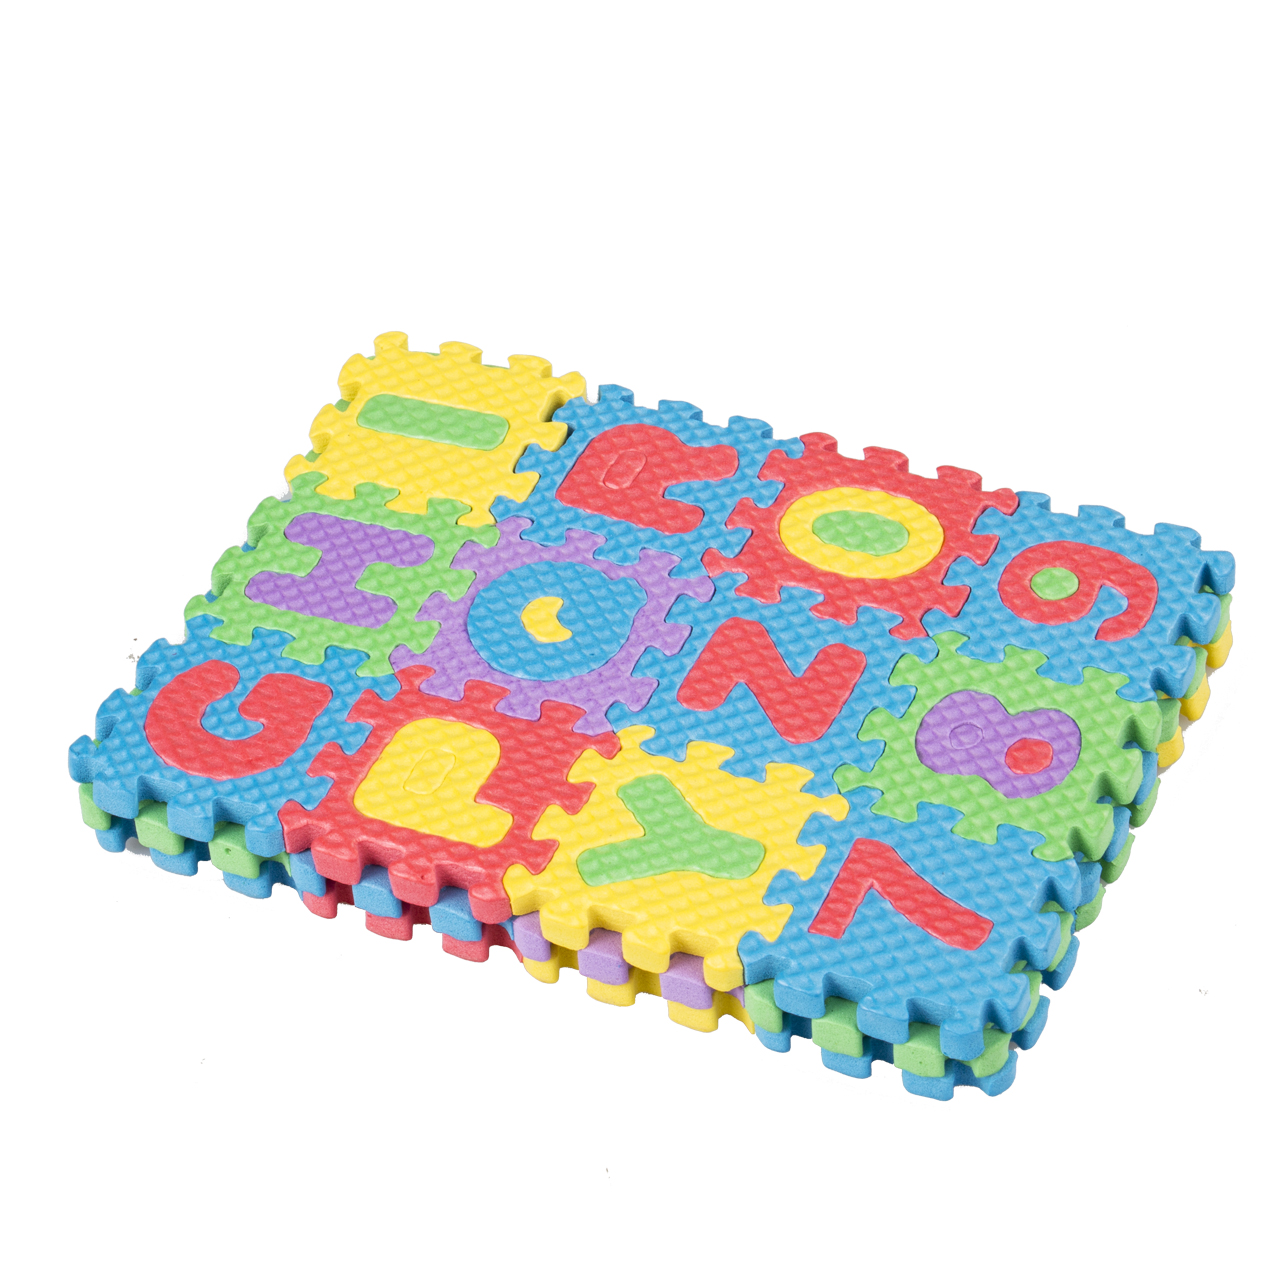 Pack of 3 Sets Numbers and Letters Foam Puzzle Tiles Item #1410-3 by 2GoodShop Alphabet /& Numbers Puzzle Educational